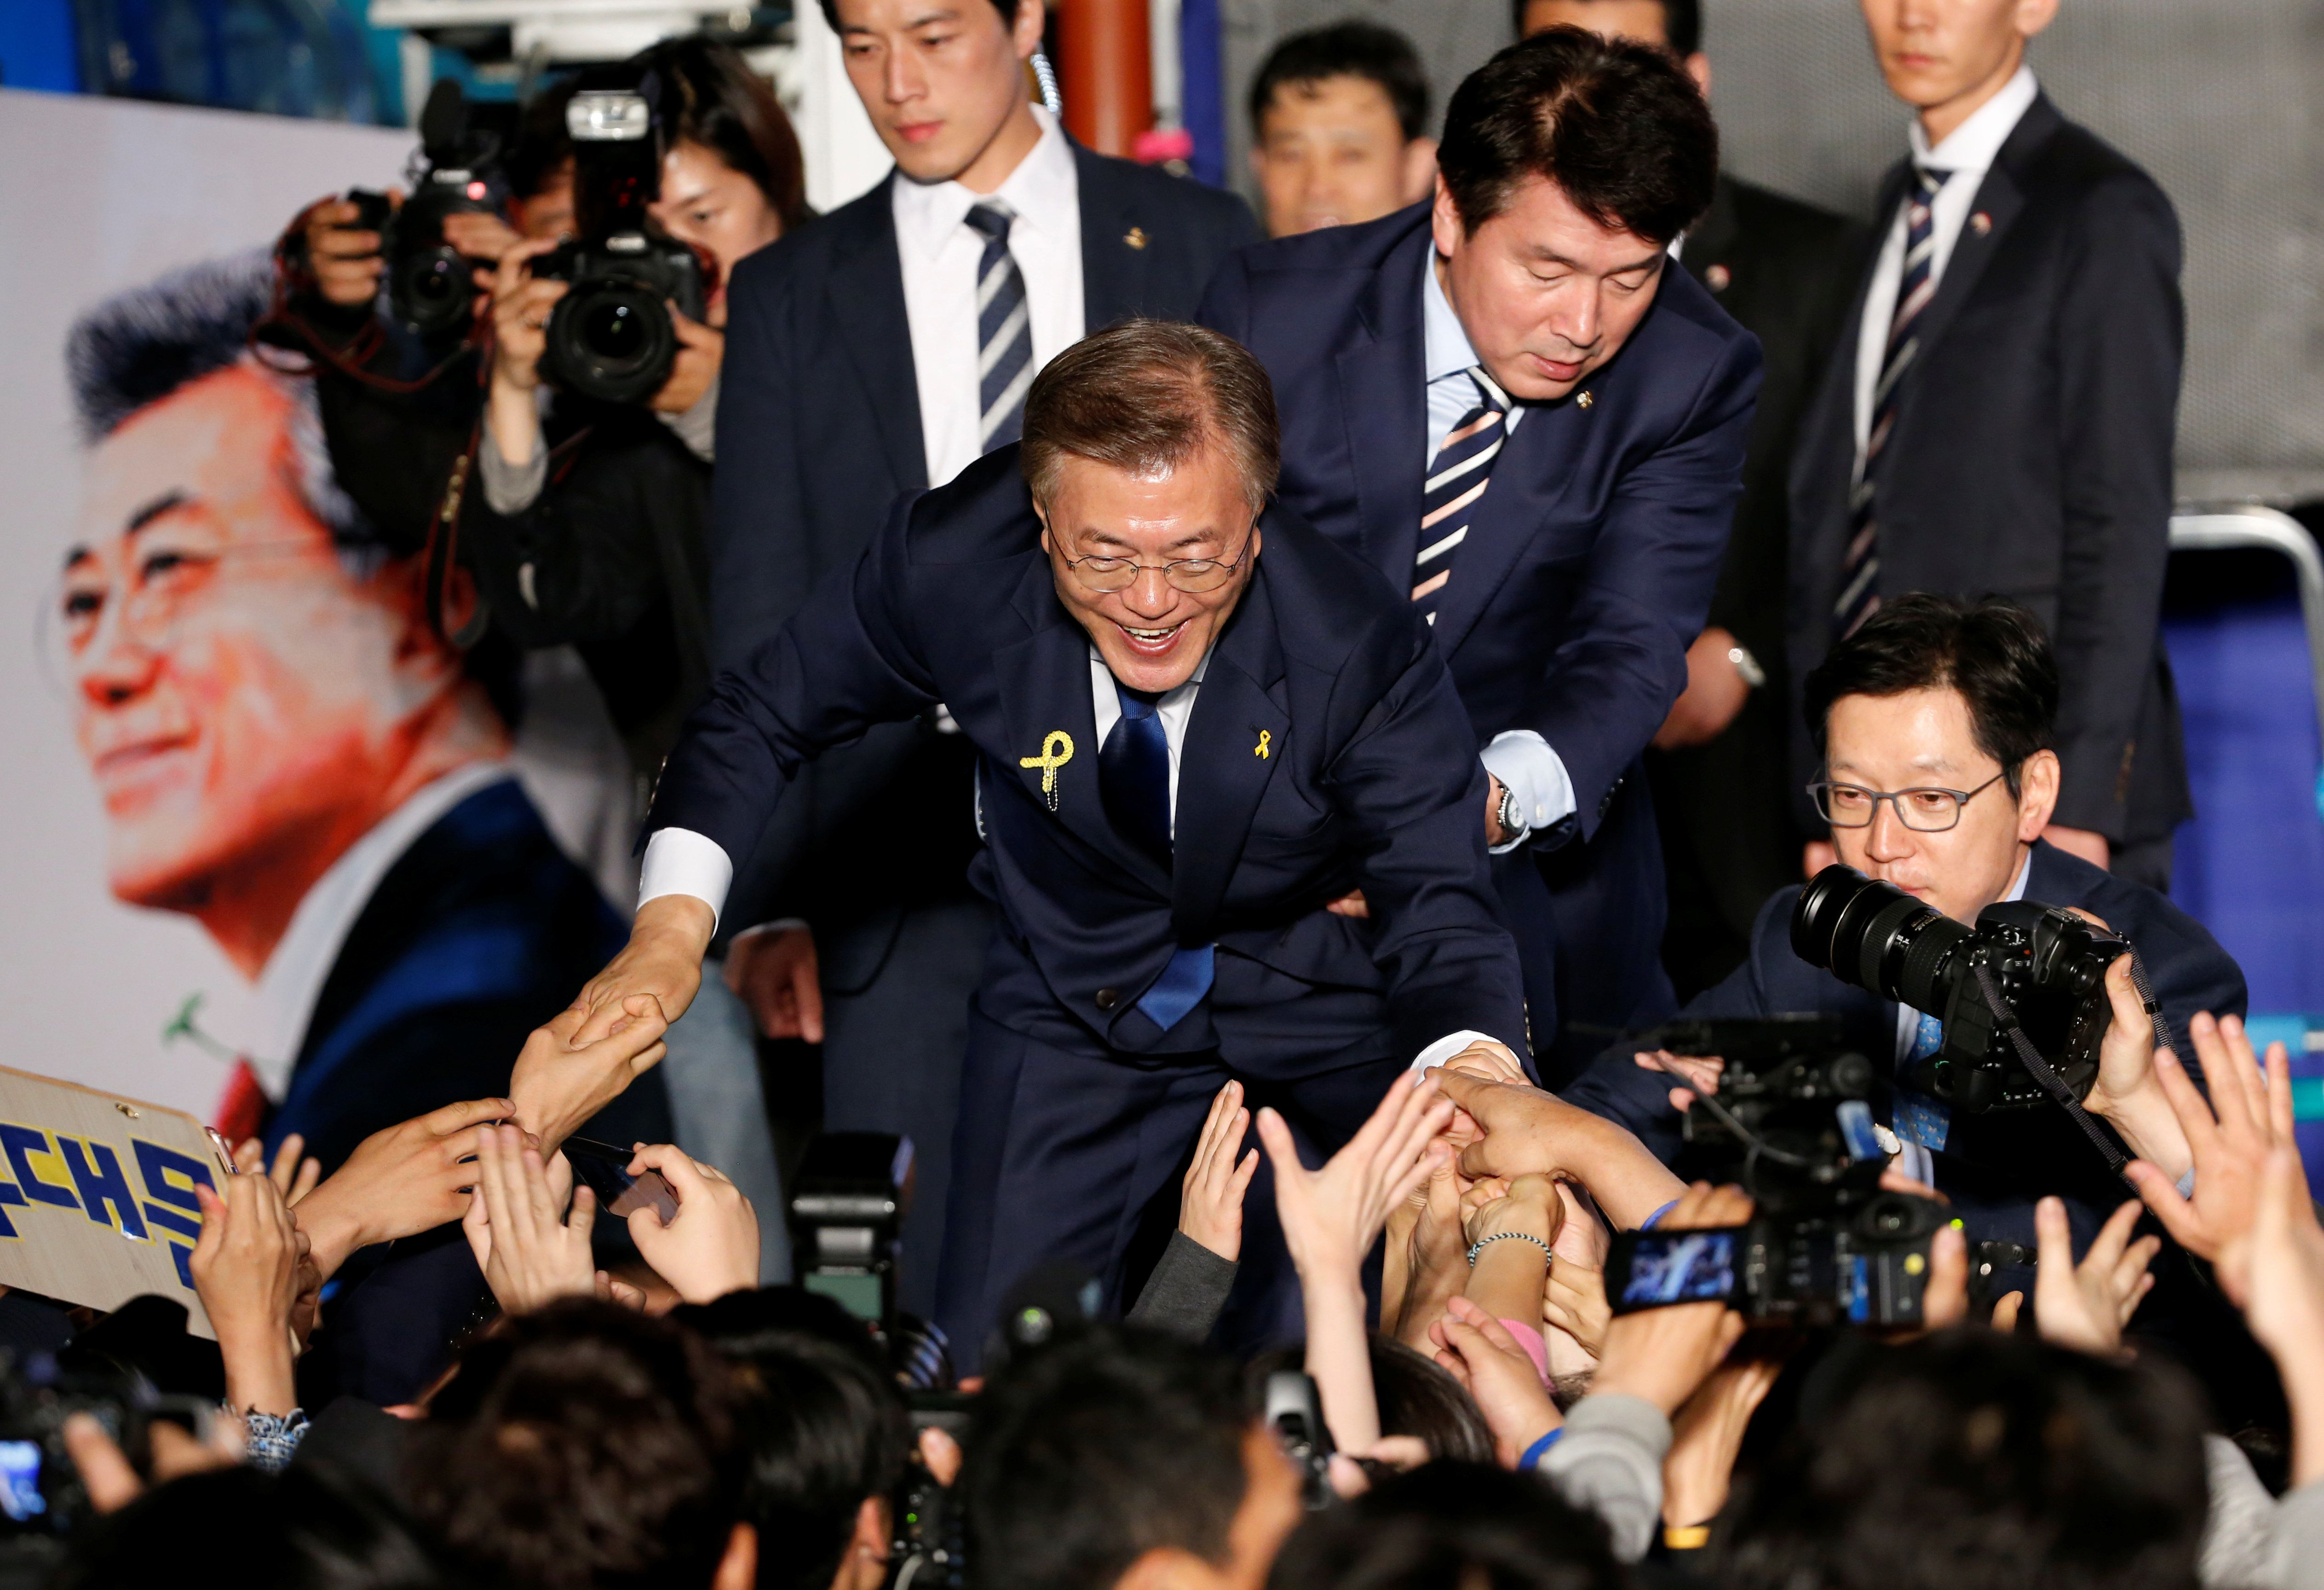 South Korea's president-elect Moon Jae-in thanks supporters at Gwanghwamun Square in Seoul, South Korea May 9, 2017. REUTERS/Kim Kyunghoon